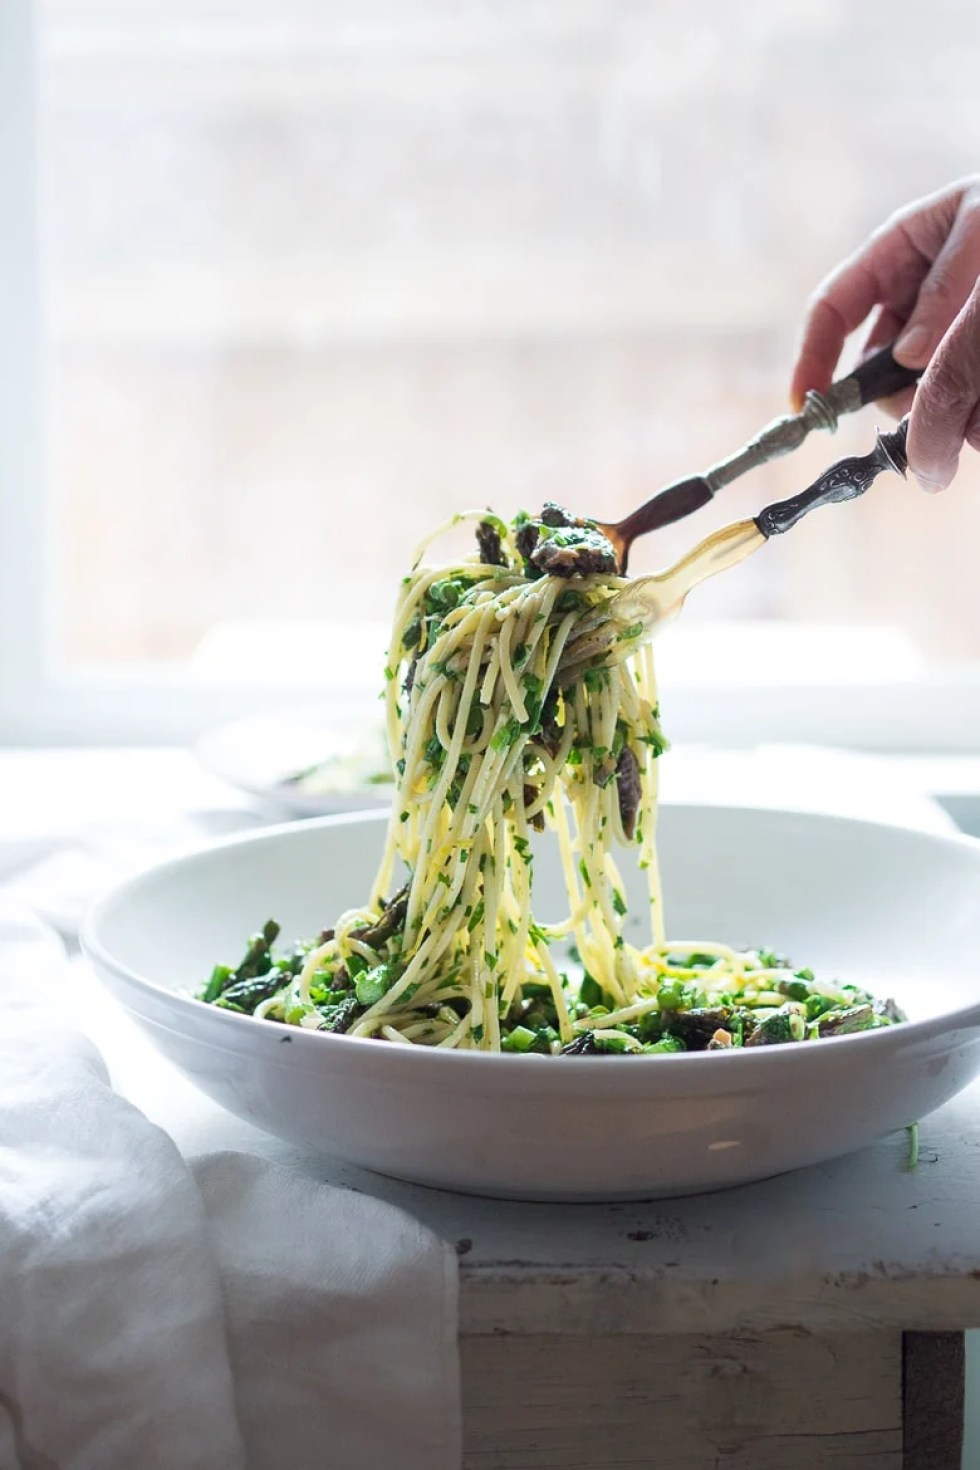 Spring Pasta Salad with Asparagus, Mushrooms and Lemon Parsley Dressing. Zesty and flavorful, make in 30 minutes! | www.feastingathome.com